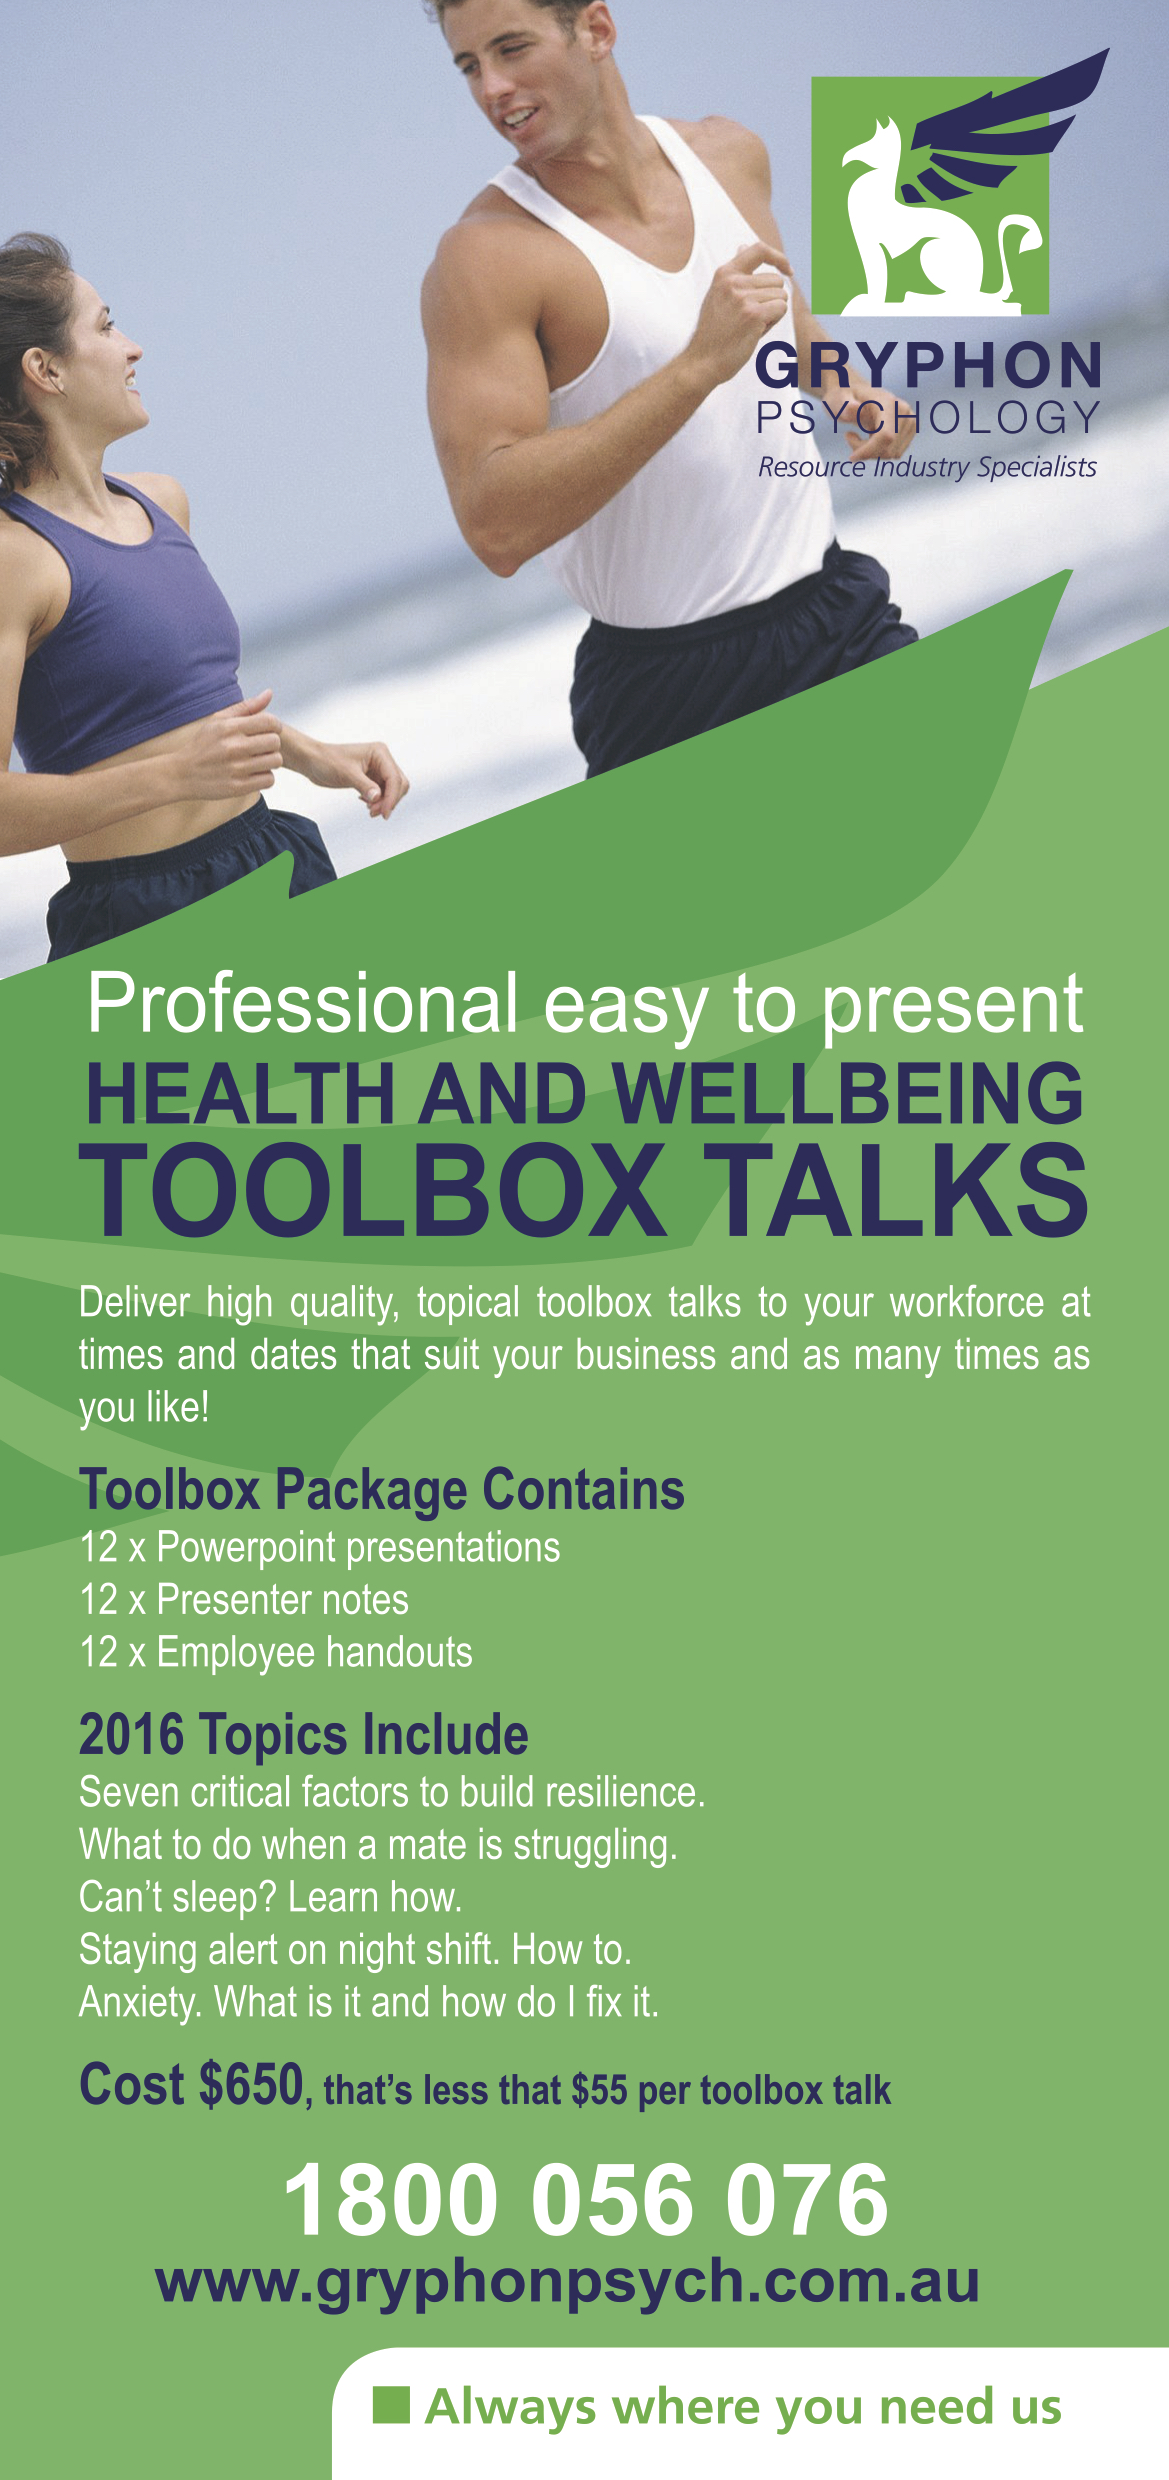 Toolbox Talks Brochure Image